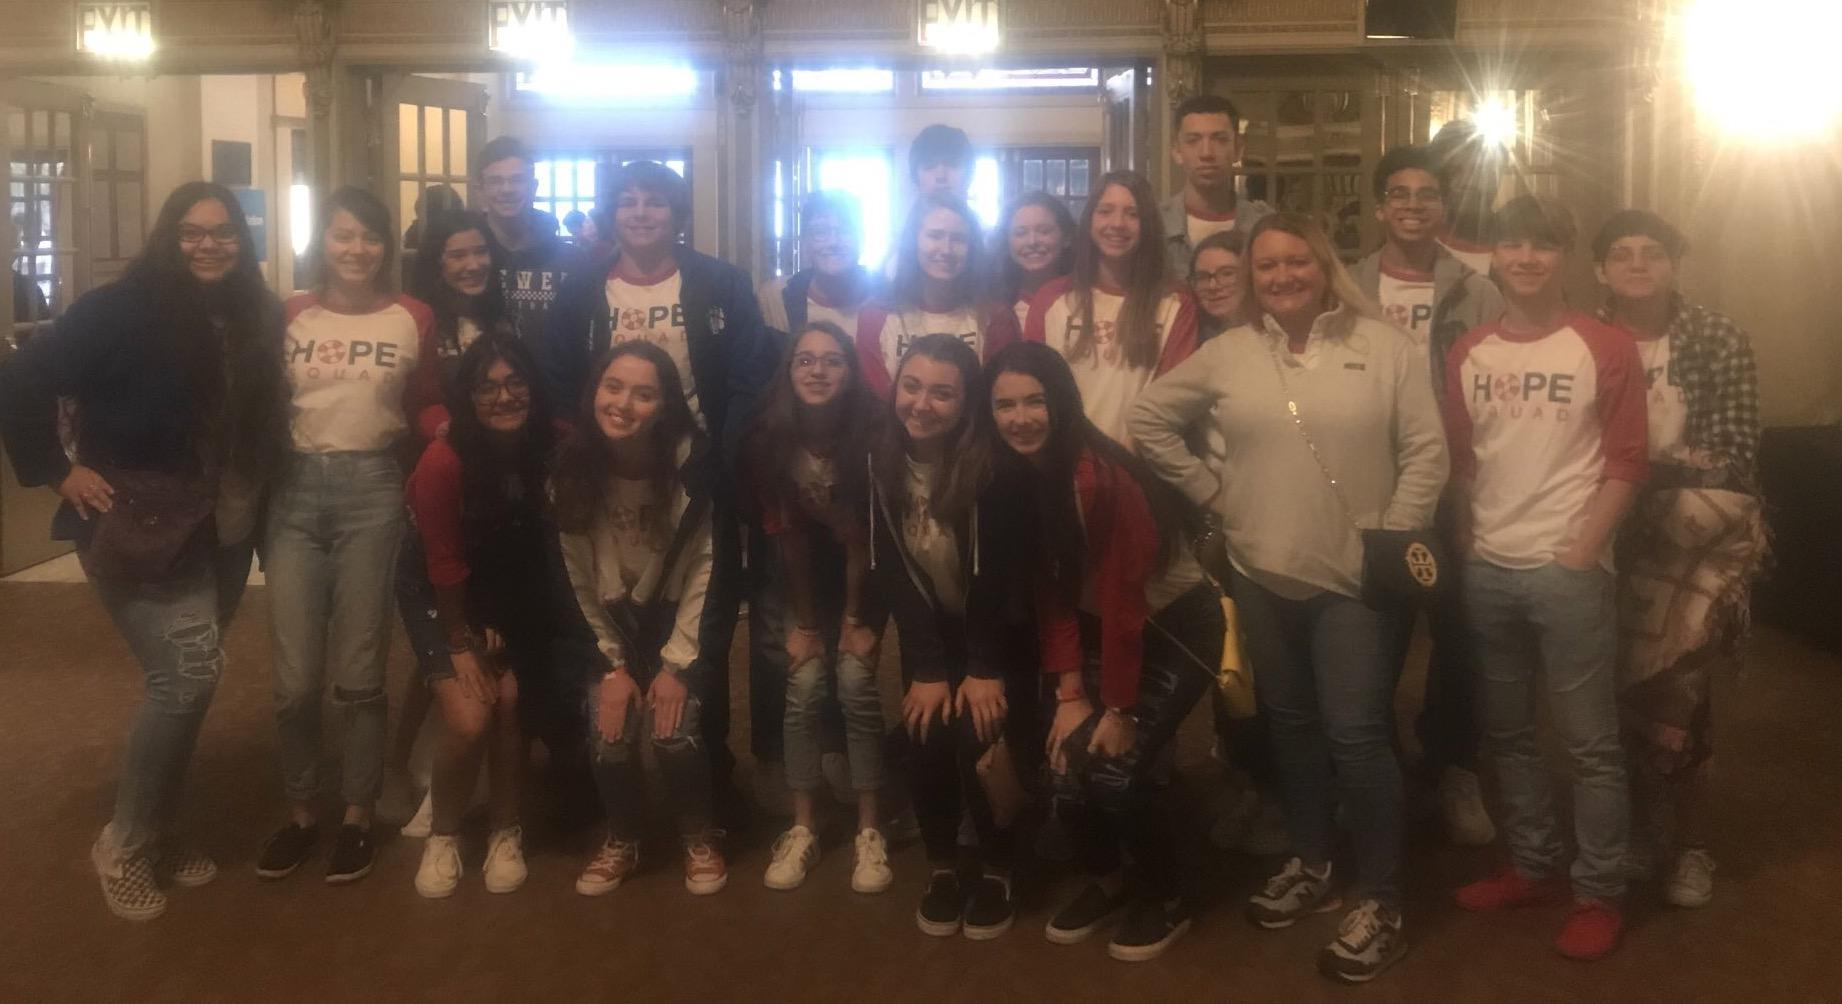 Brewer High School Hope Squad members were selected to attend the 2019 WE day at the Majestic Theatre in Dallas.